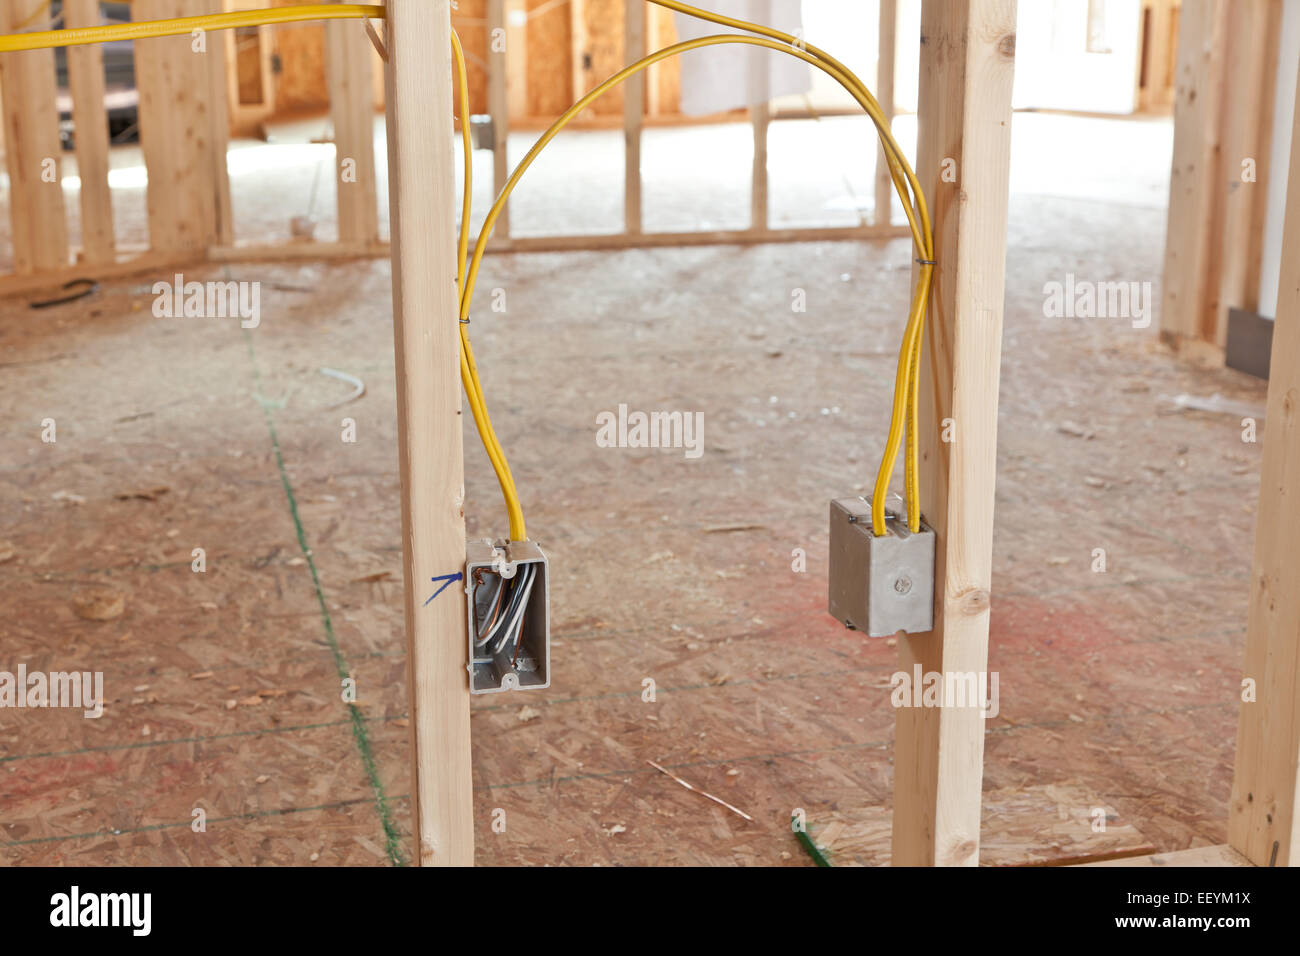 electrical wiring in new home construction stock photo 78055094 alamy rh alamy com New Home Wiring Diagram house wiring new construction